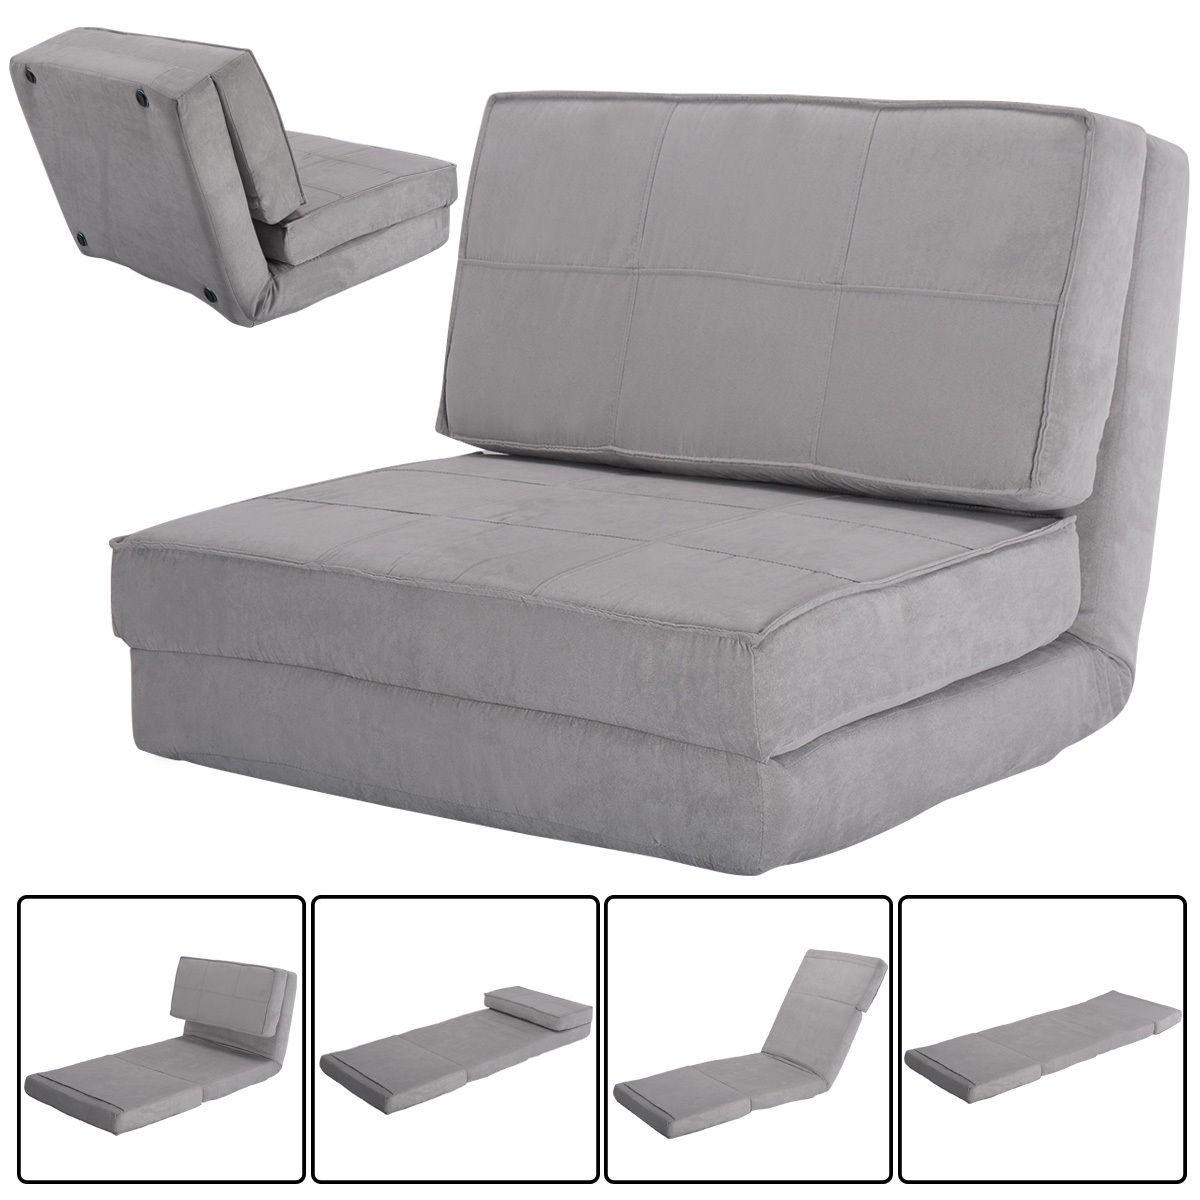 Convertible Lounger Folding Sofa Sleeper Bed – Sofas – Furniture For Folding Sofa Chairs (Image 7 of 20)